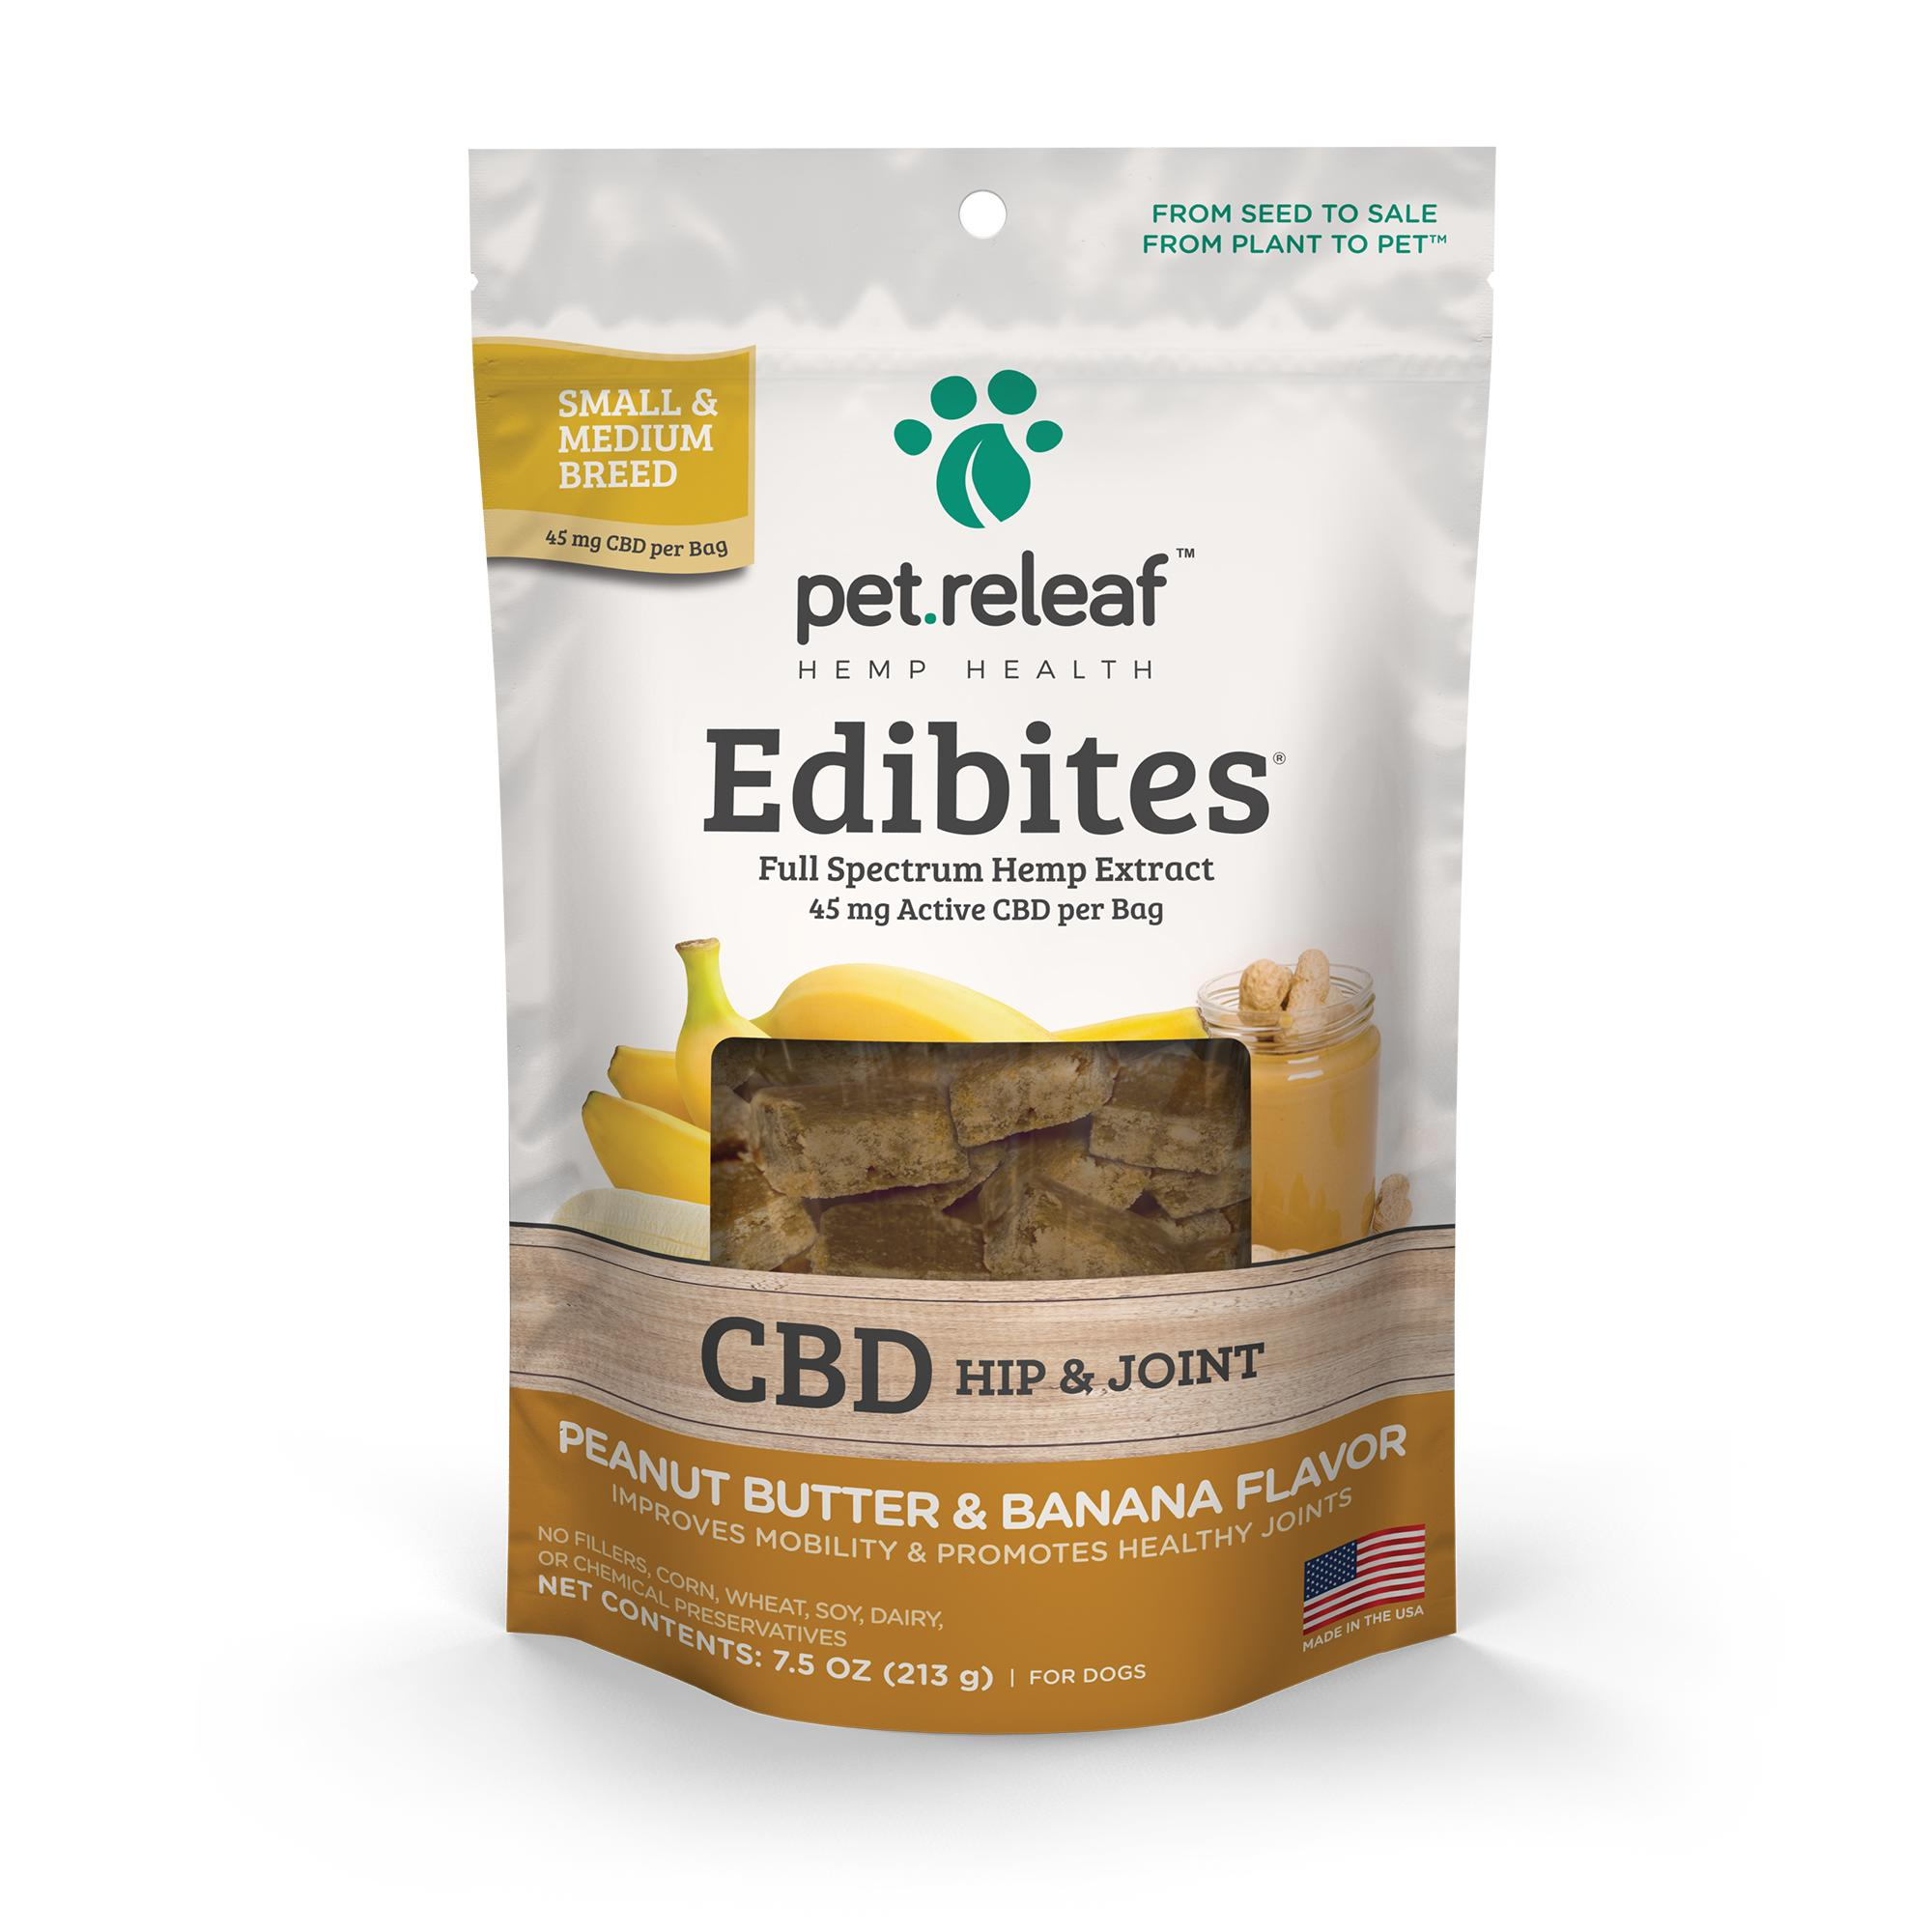 Pet Releaf Edibites Hip & Joint Peanut Butter & Banana Small & Medium Breed Dog Suppliment Image